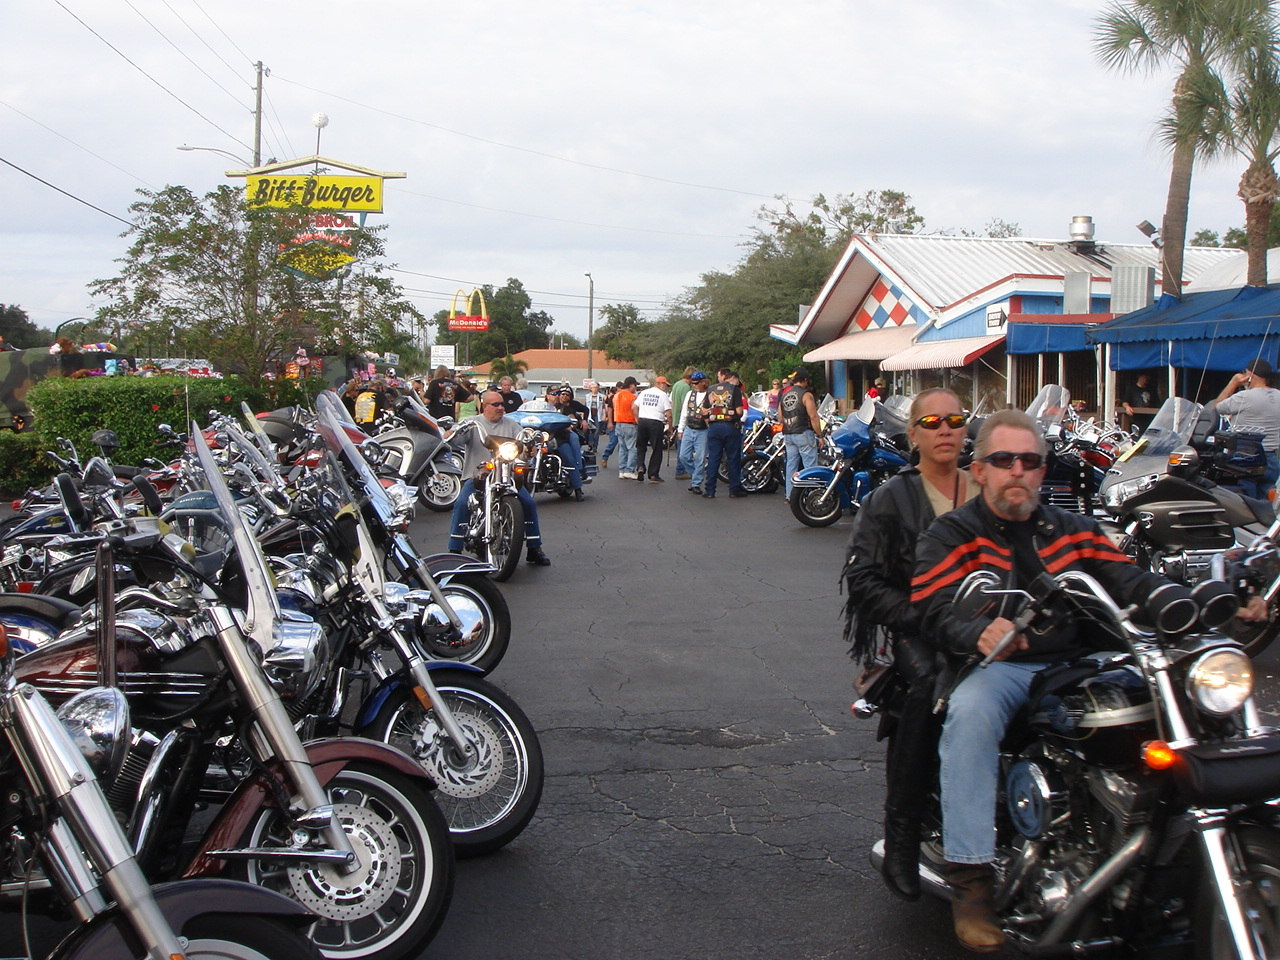 Bikes Toys For Tots Or Bust : Annual biff burger toys for tots bike show